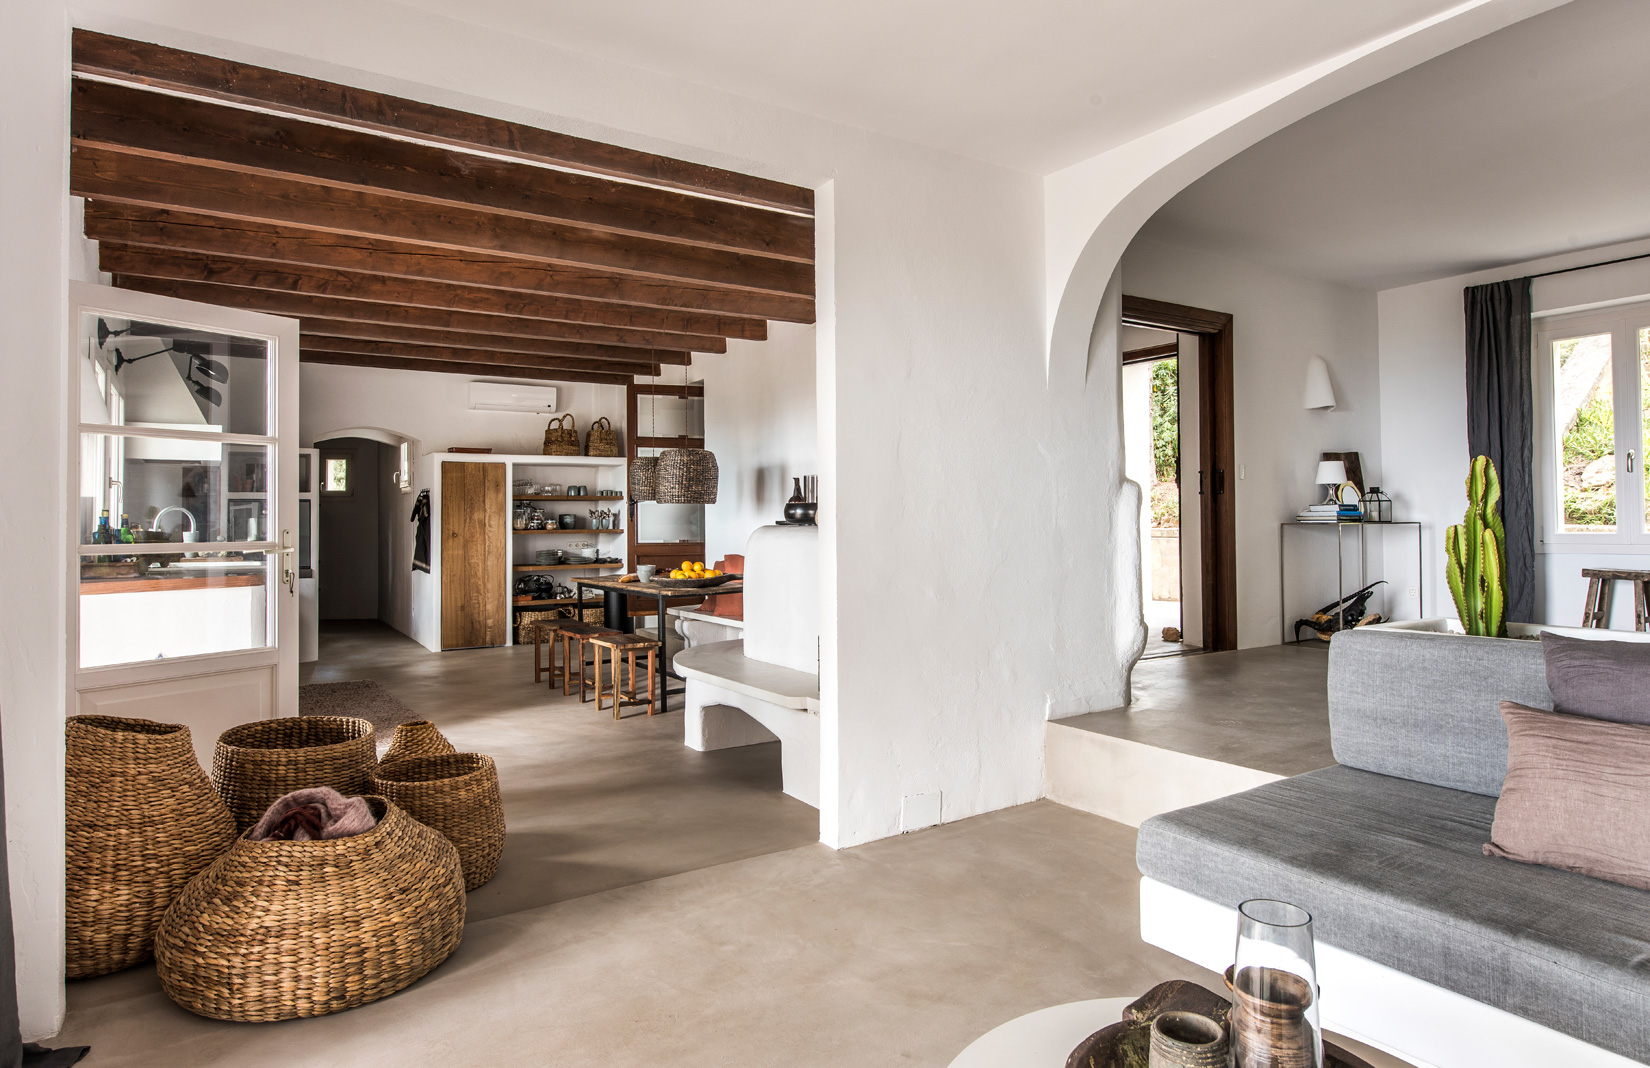 Modern Mallorcan holiday villa with Ibizan views lists for €2.95m